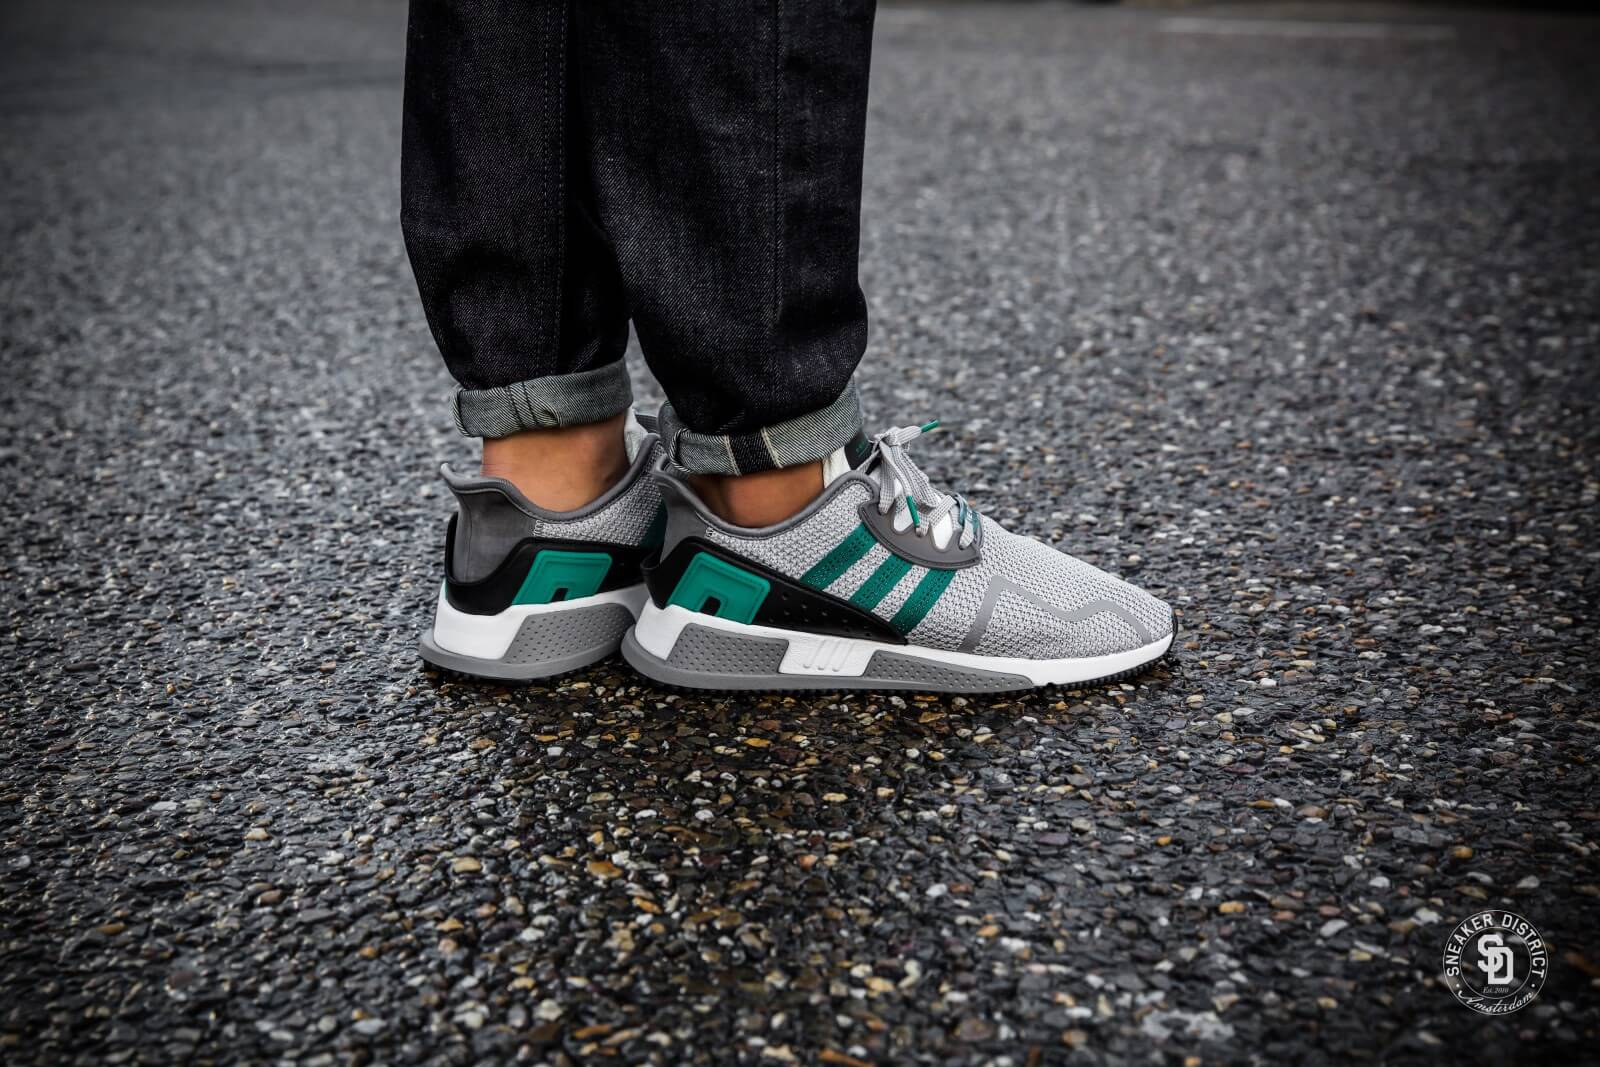 pretty nice c838b 0007f ... Two Sub Green Ftwr White) Adidas EQT Cushion ADV Grey TwoSub  GreenFootwear White - AH2 ...